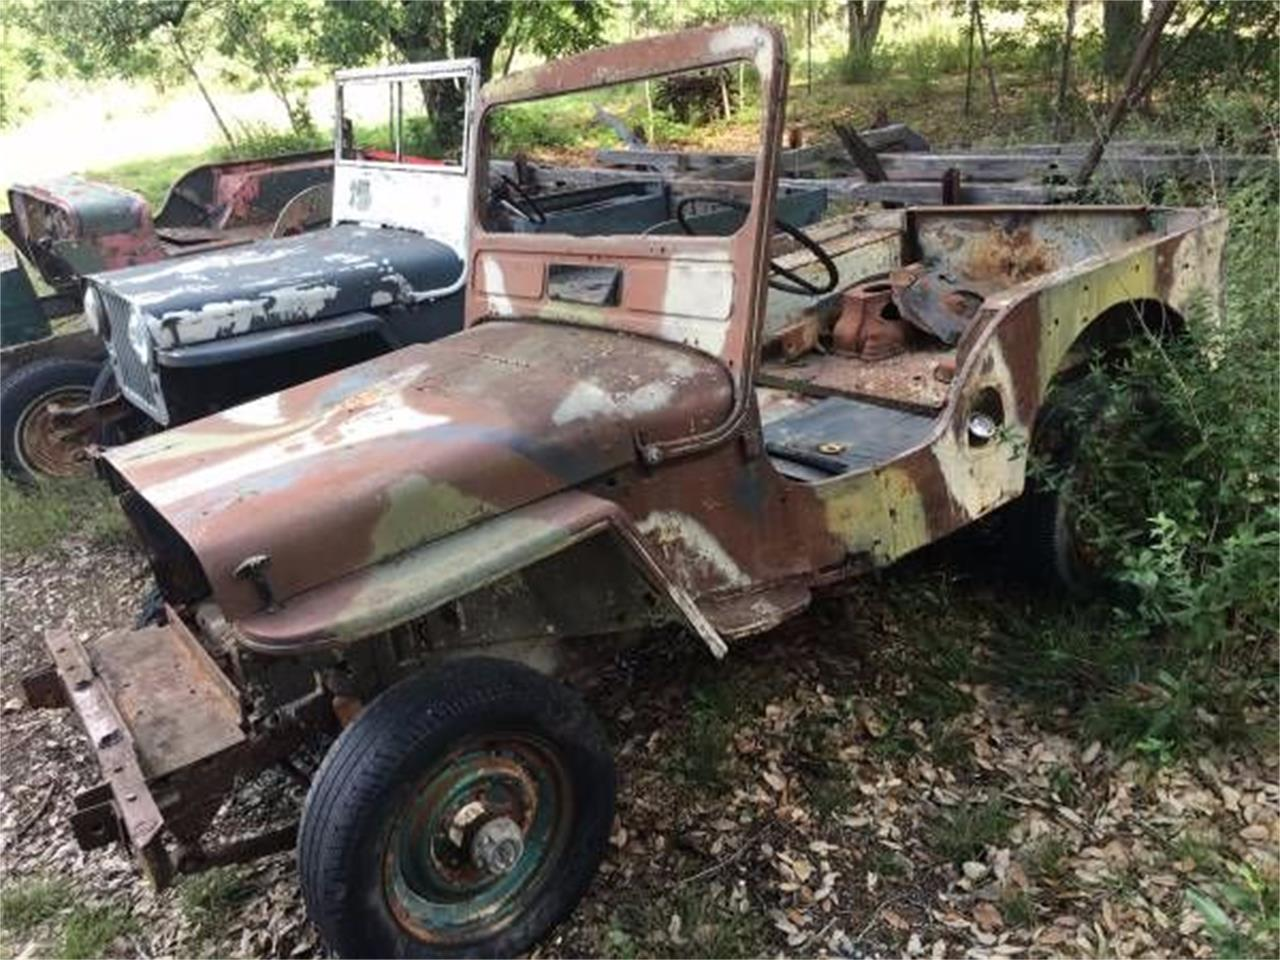 1947 Willys Jeep for sale in Cadillac, MI – photo 5